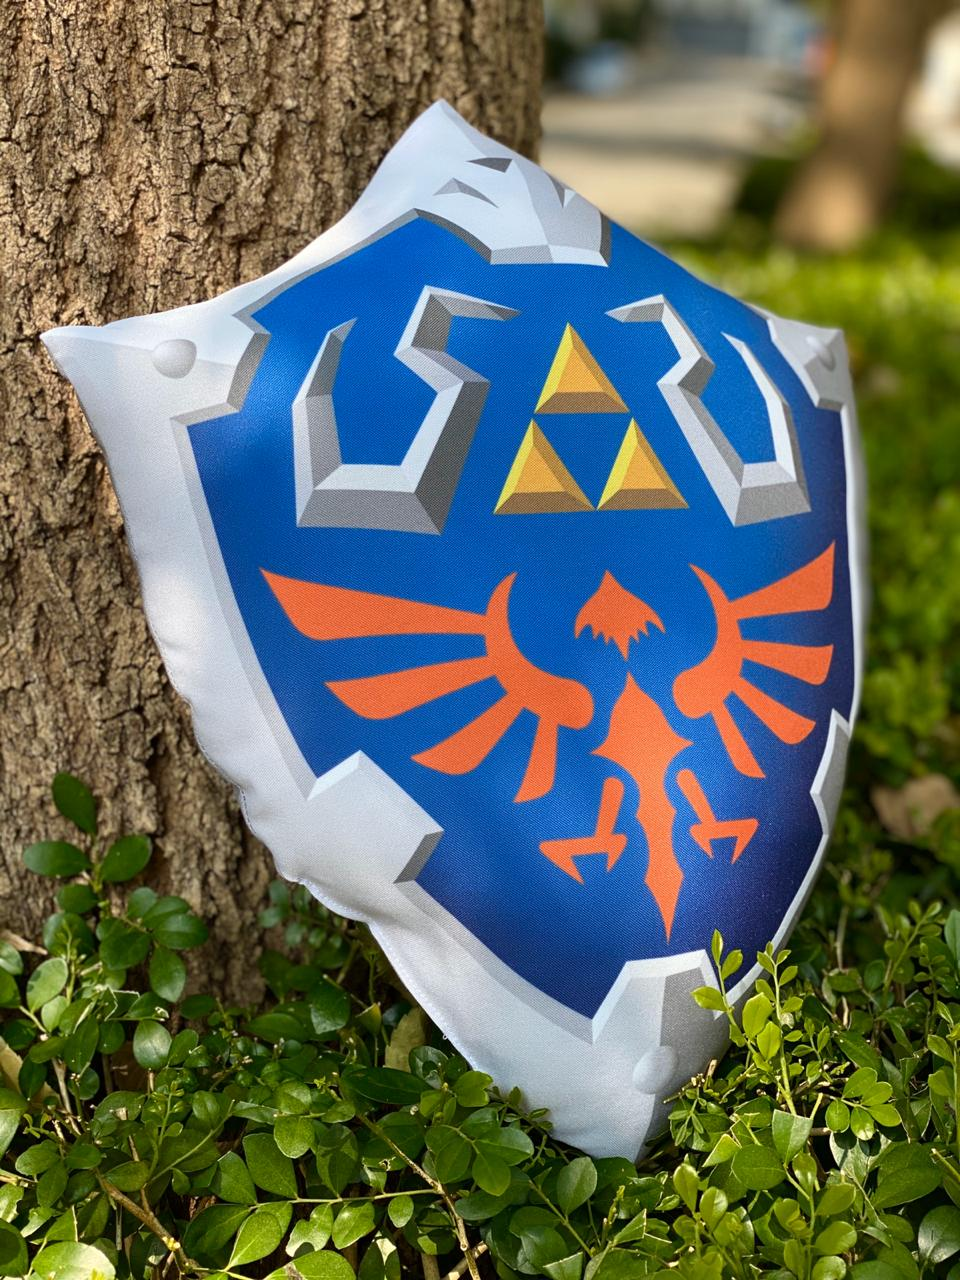 Almofada Escudo Hylian: A Lenda de Zelda (The Legend of Zelda)